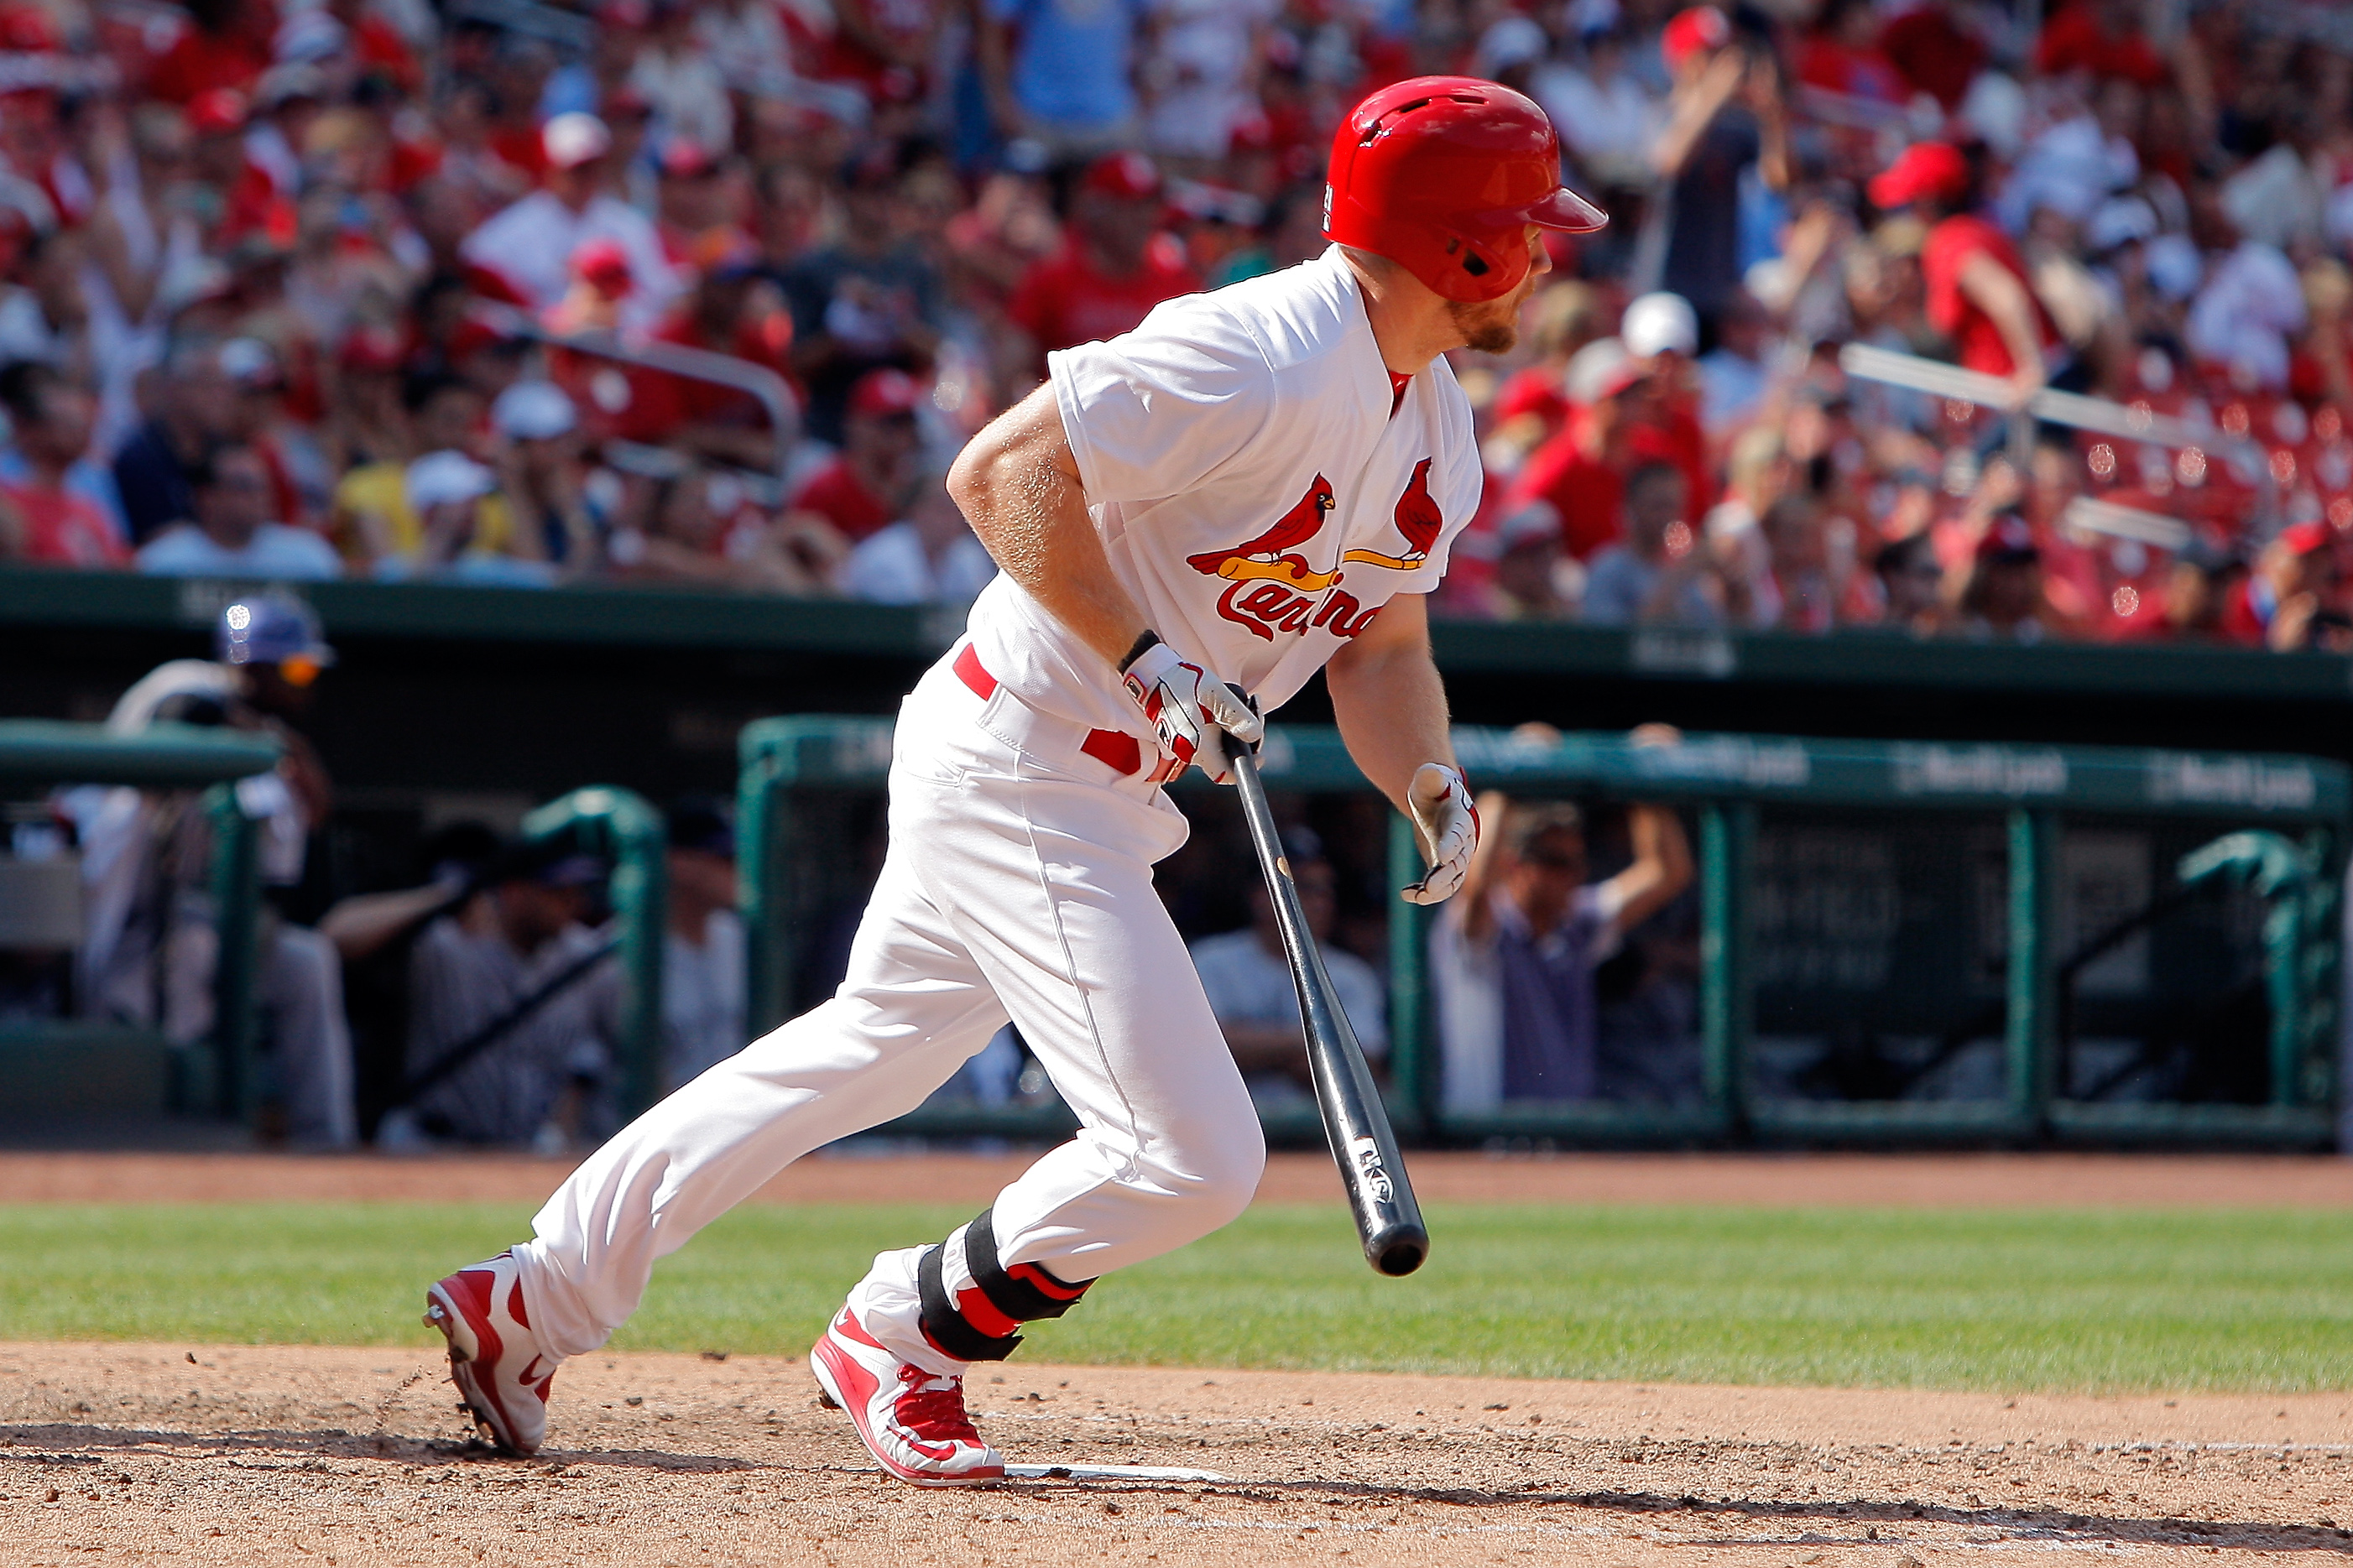 St. Louis Cardinals' Brandon Moss hits a walkoff single to drive in Jason Heyward to score the winning run during the ninth inning of a baseball game against the Colorado Rockies, Sunday, Aug. 2, 2015, in St. Louis. (AP Photo/Scott Kane)